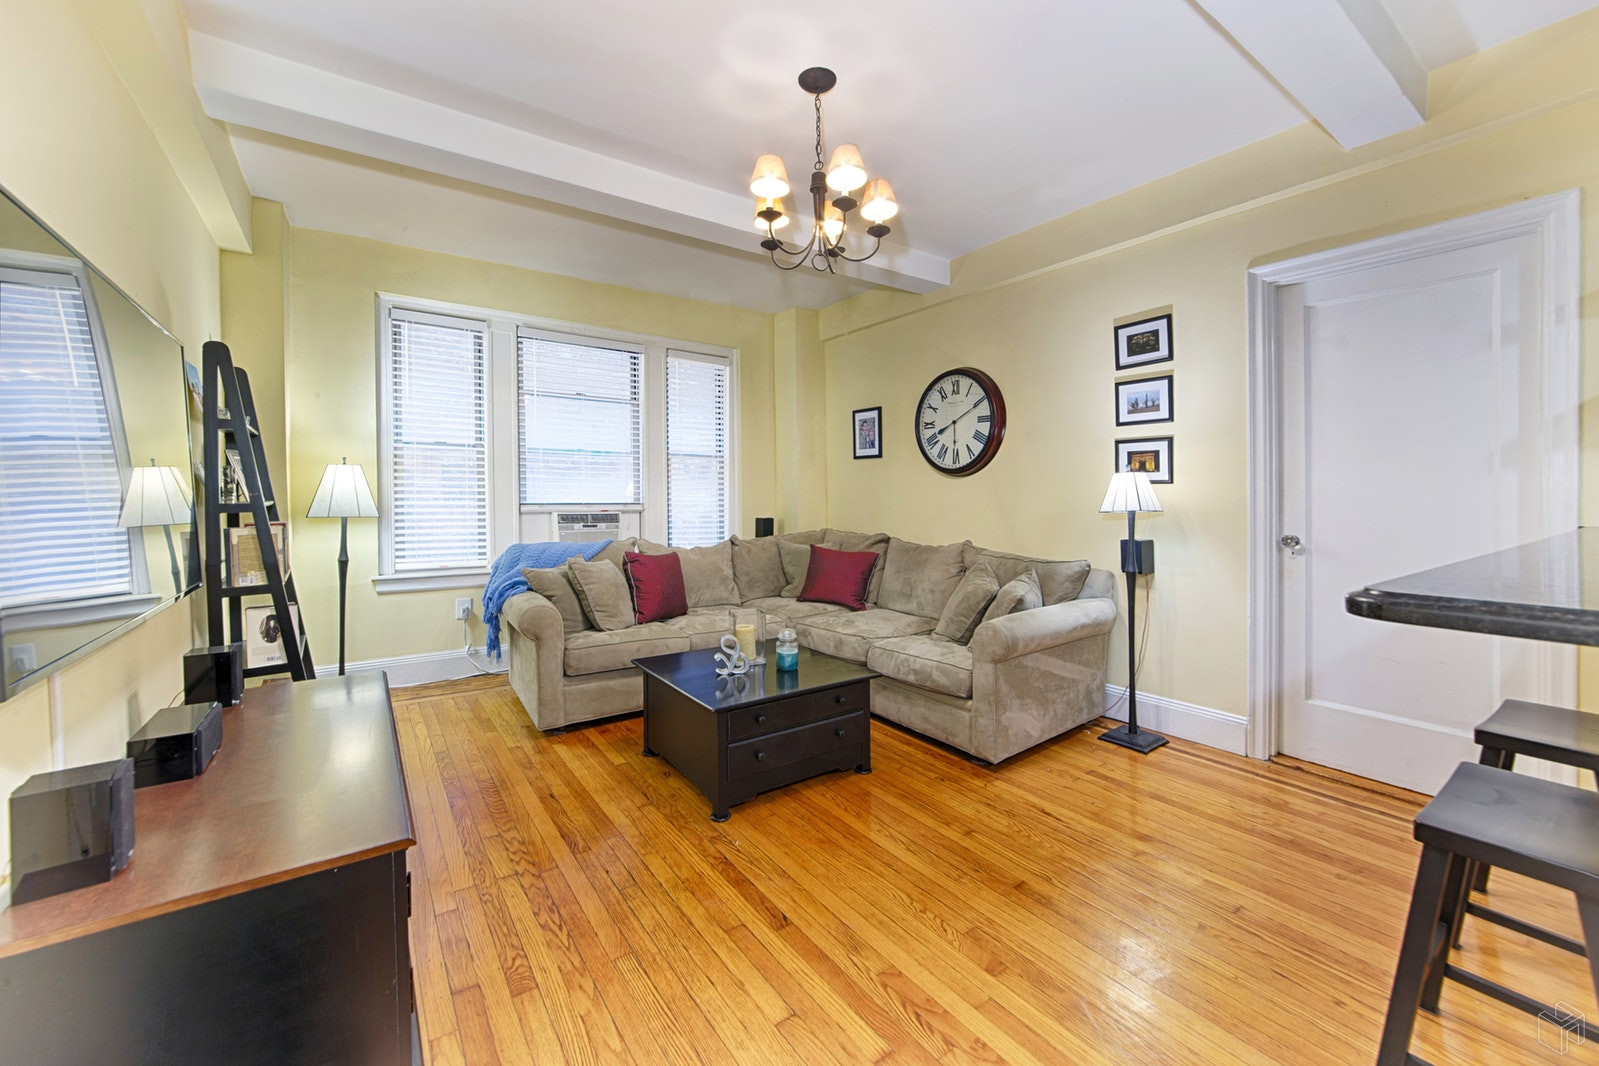 40 West 72nd Street 34, Upper West Side, NYC, 10023, $590,000, Sold Property, Halstead Real Estate, Photo 1